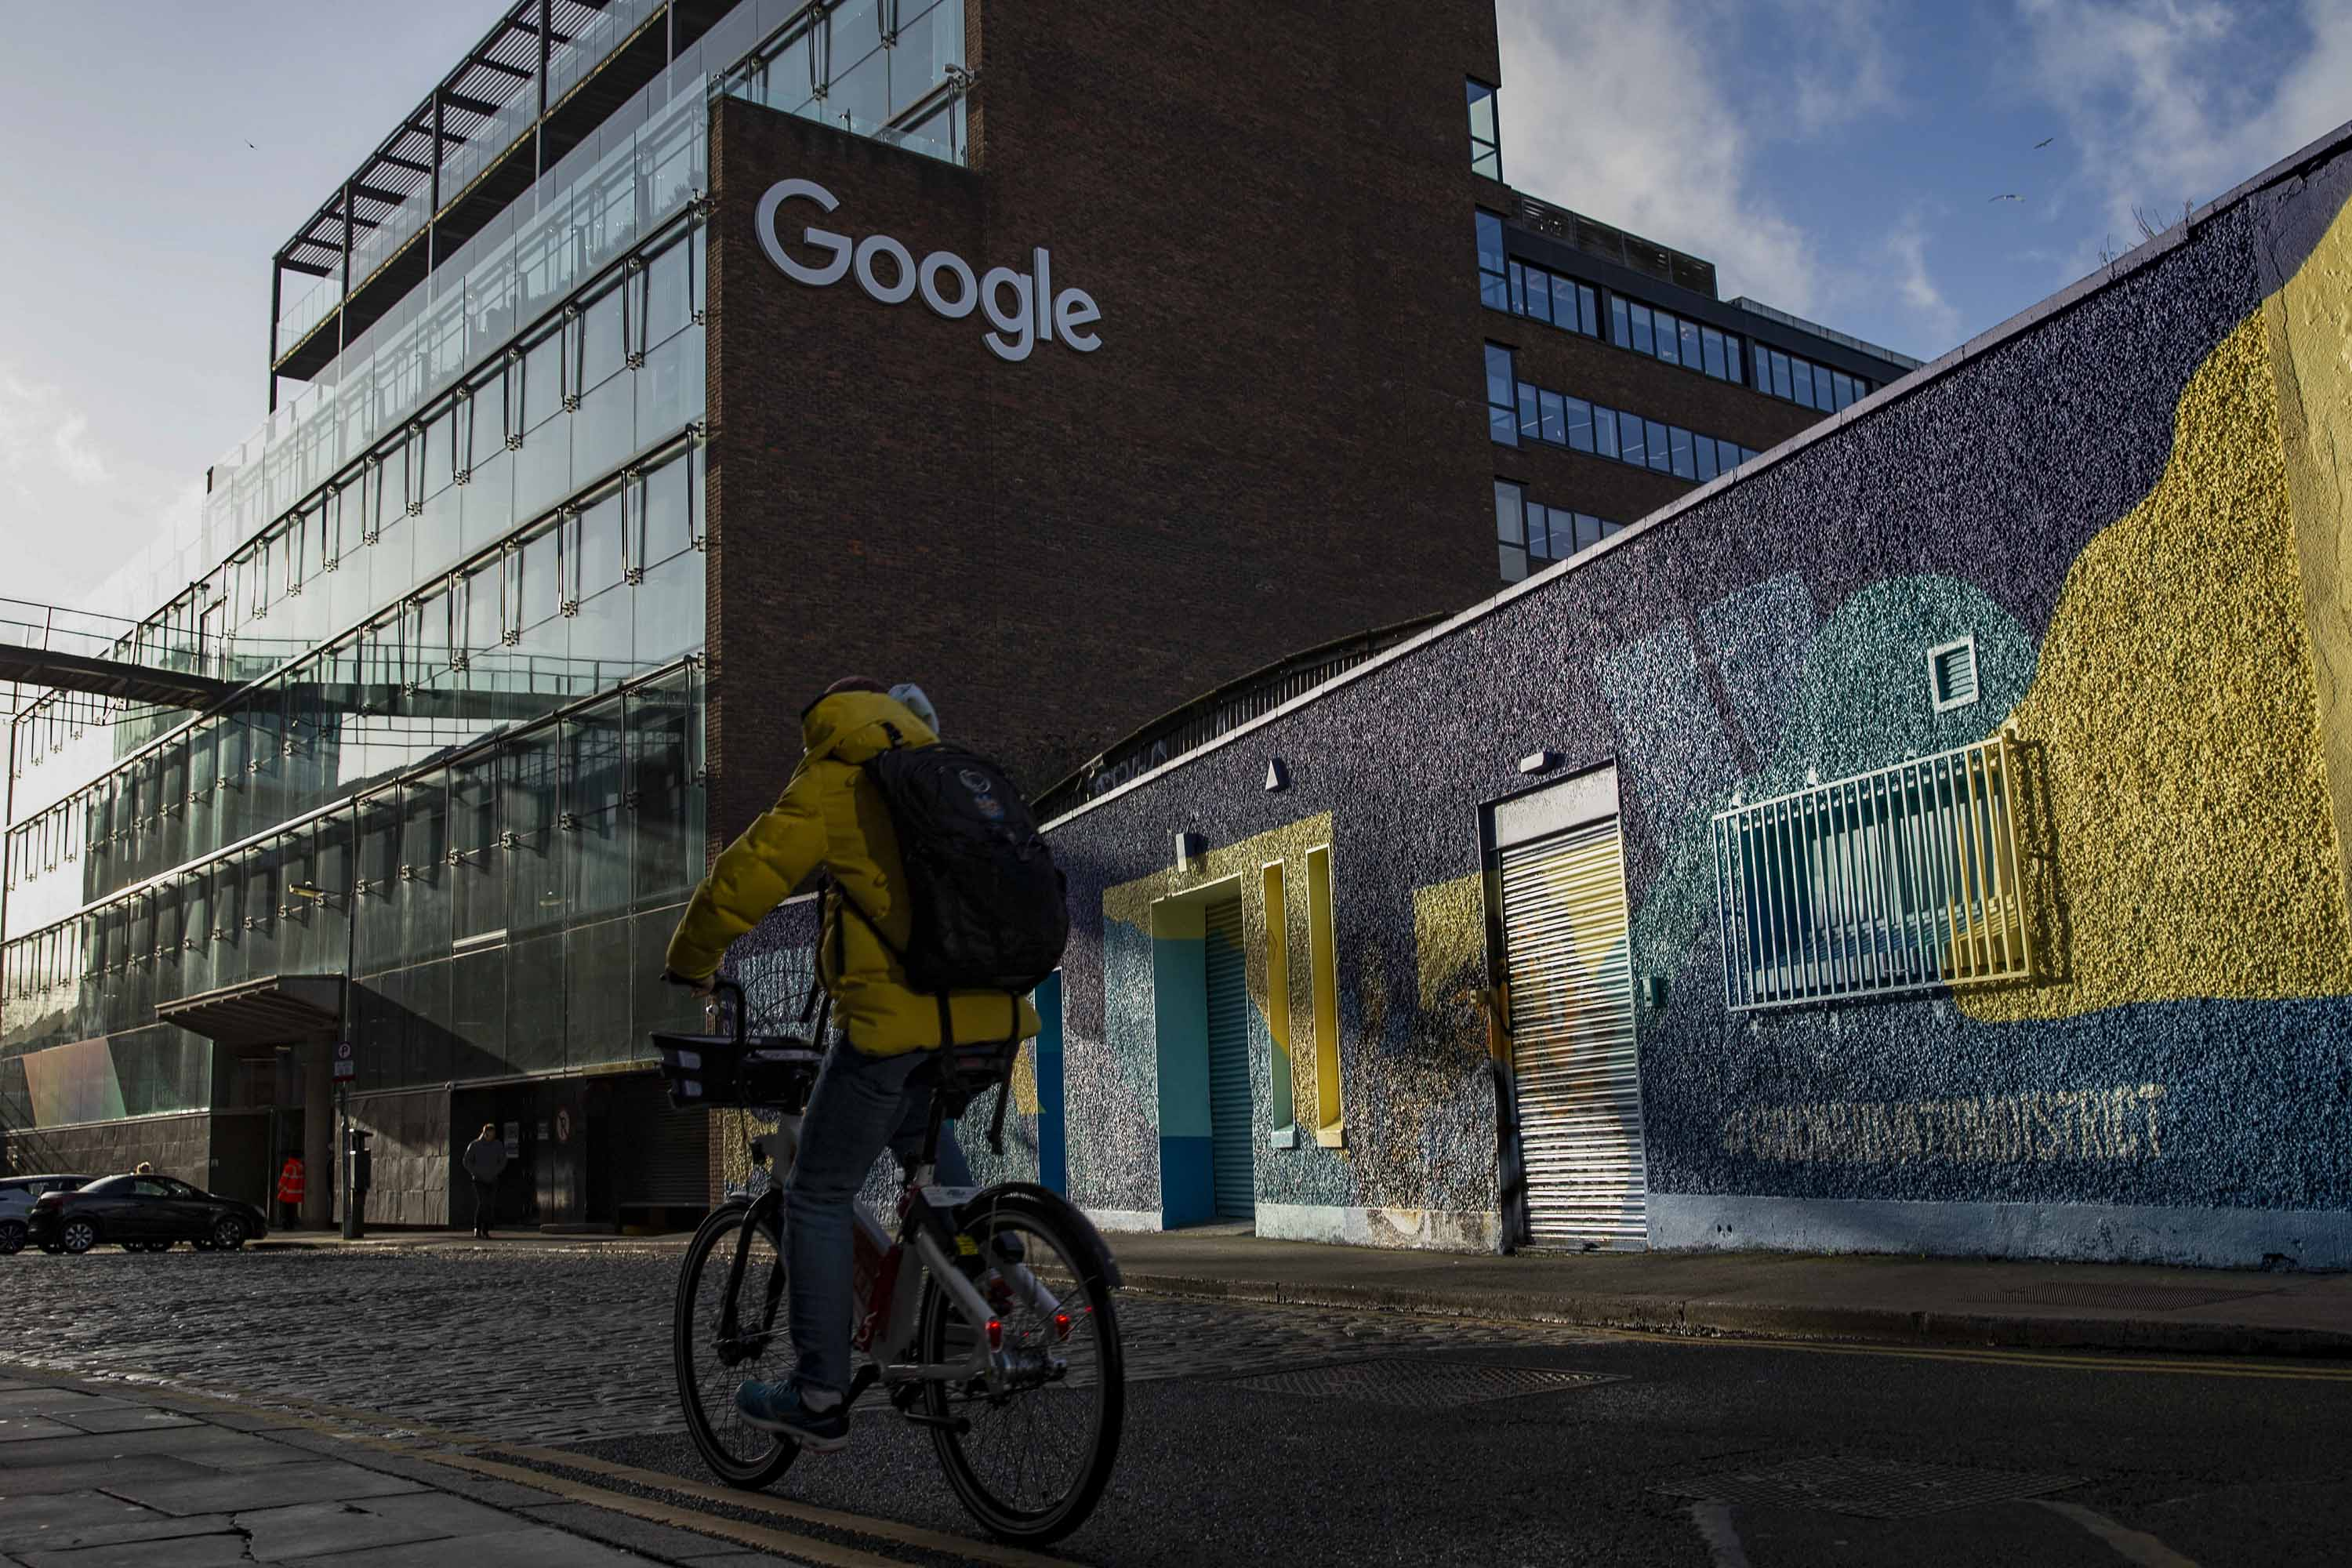 A cyclist passes the European headquarters building of Google Inc. in Dublin, Ireland, on January 6.